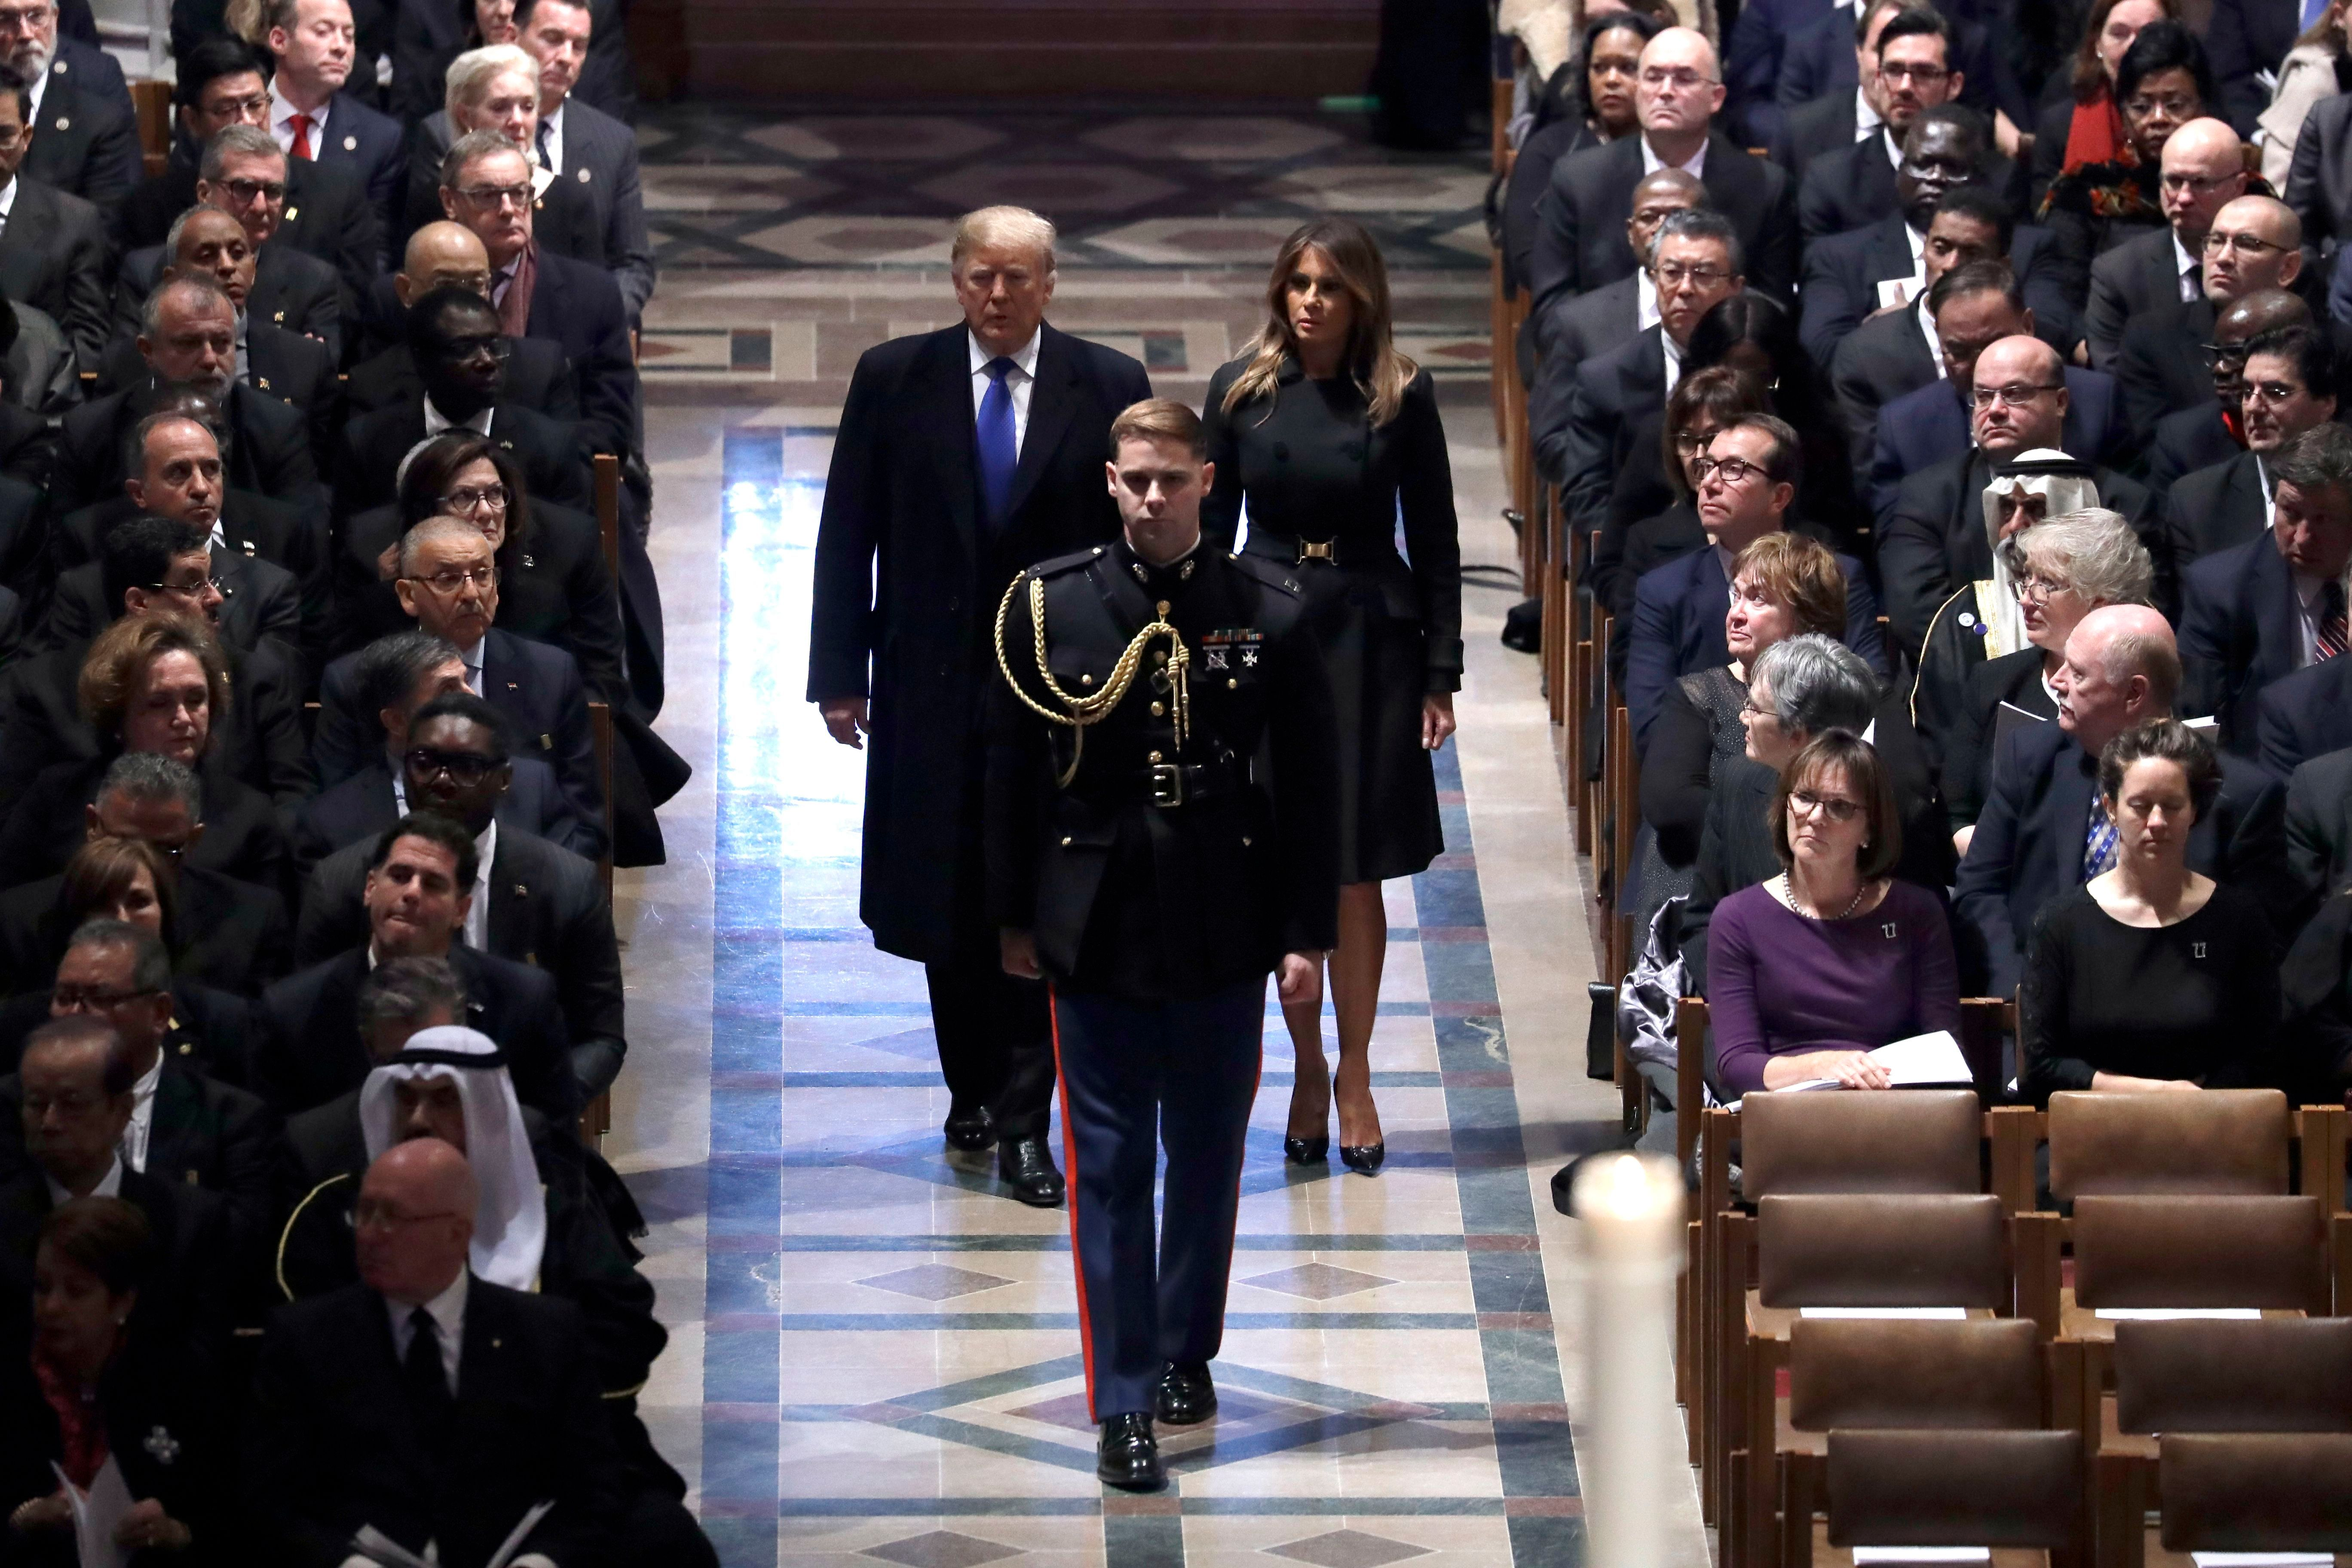 President Donald Trump and first lady Melania Trump arrive for the State Funeral former President George H.W. Bush, at the National Cathedral, in Washington on Dec. 5, 2018.